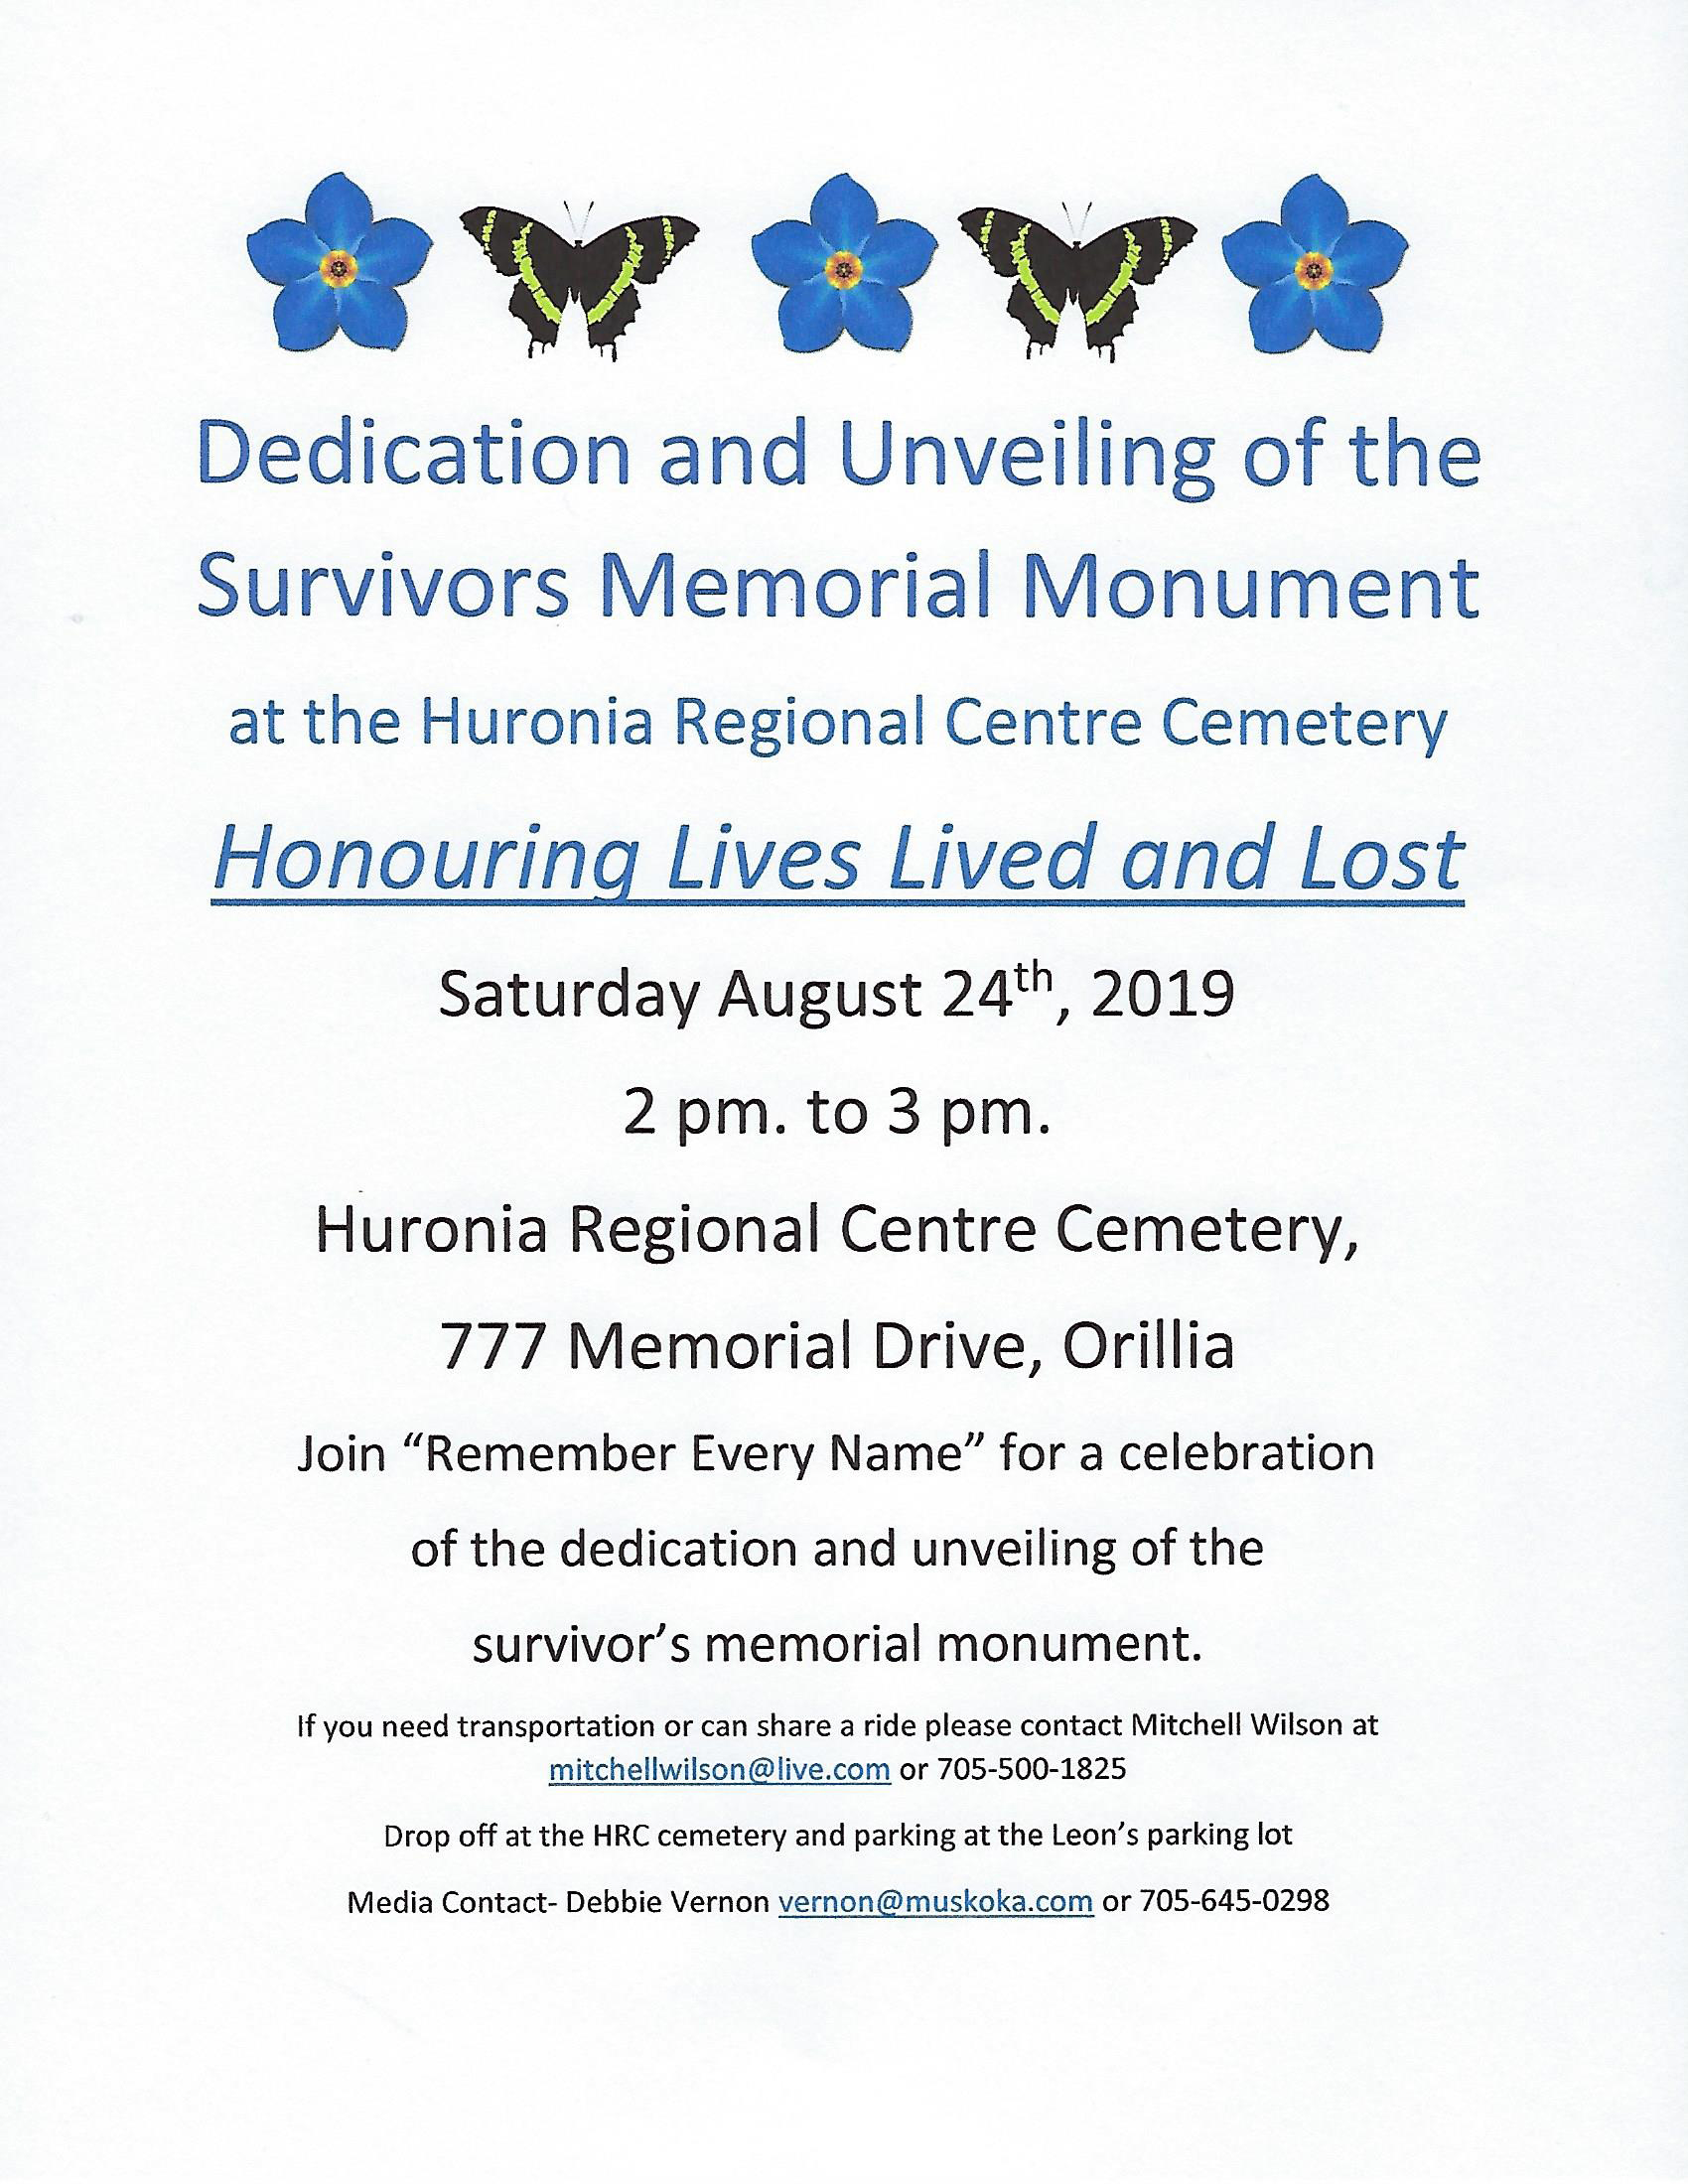 Honouring Lives Lived and Lost Dedication Ceremony jpg